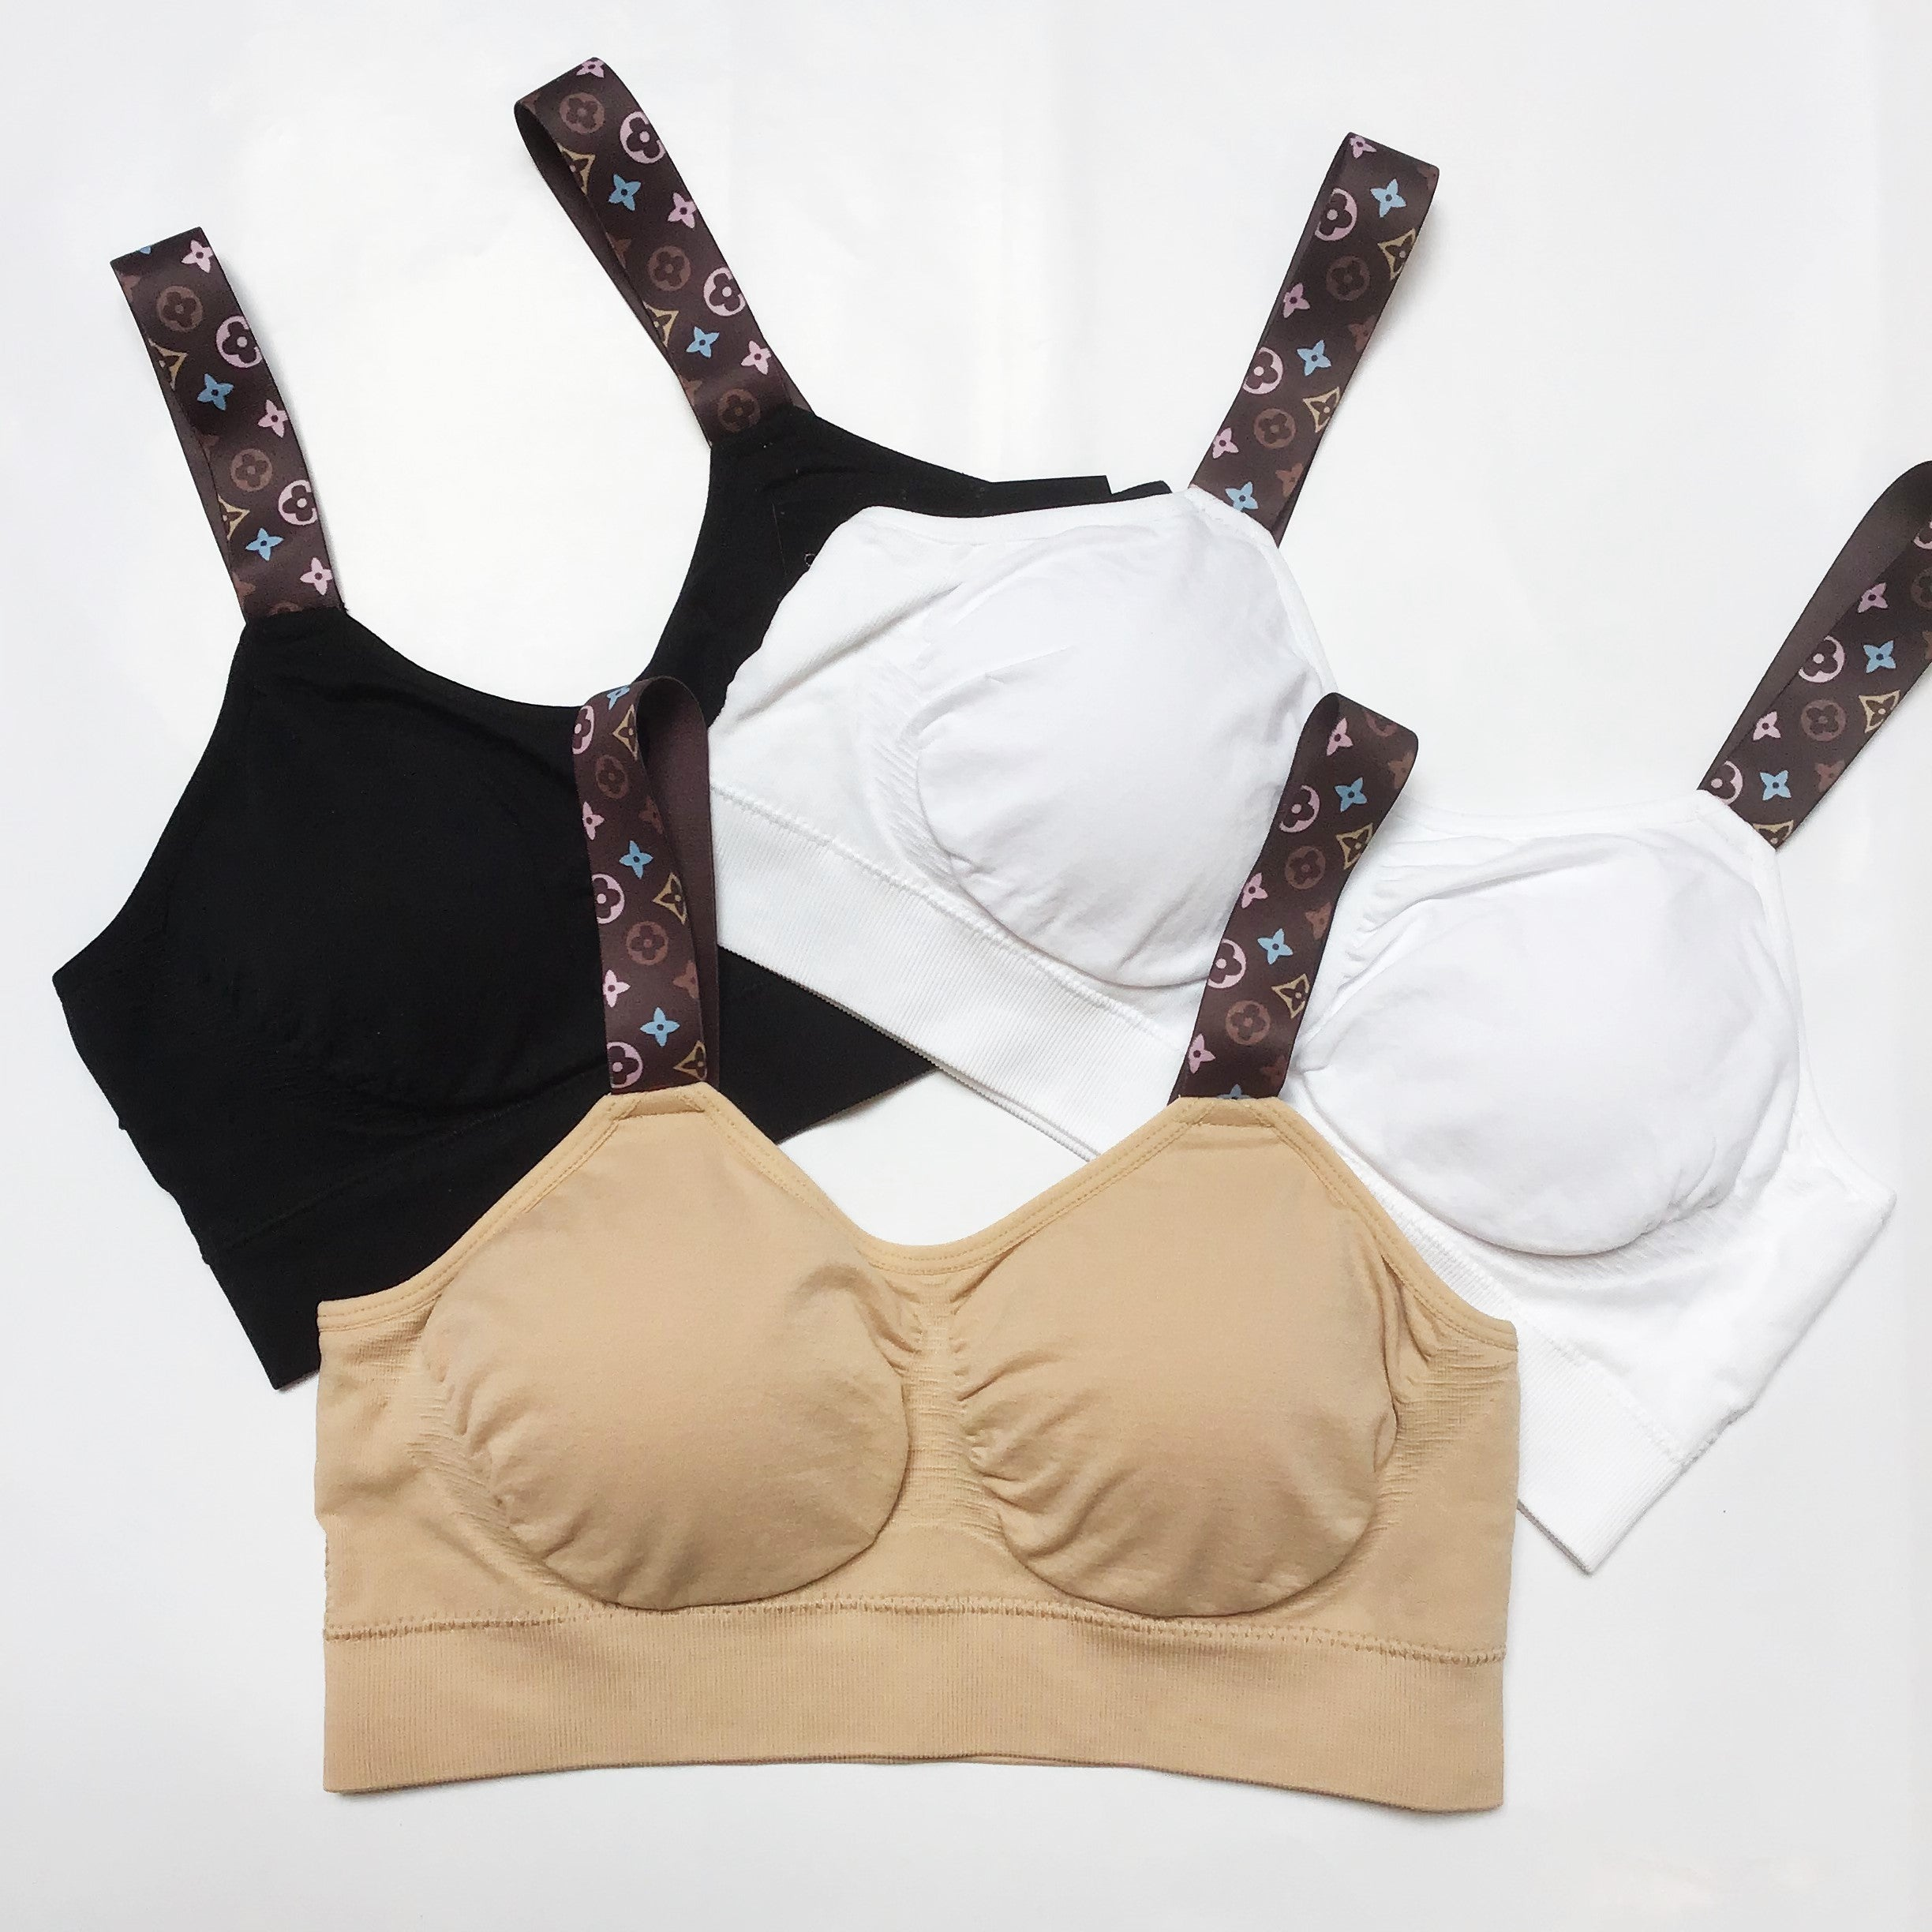 LoVe - The Love strap in Nude by Strap Its. Soft, comfortable, seamless and supportive. A bra designed to show off the straps! Comes with removable pads.